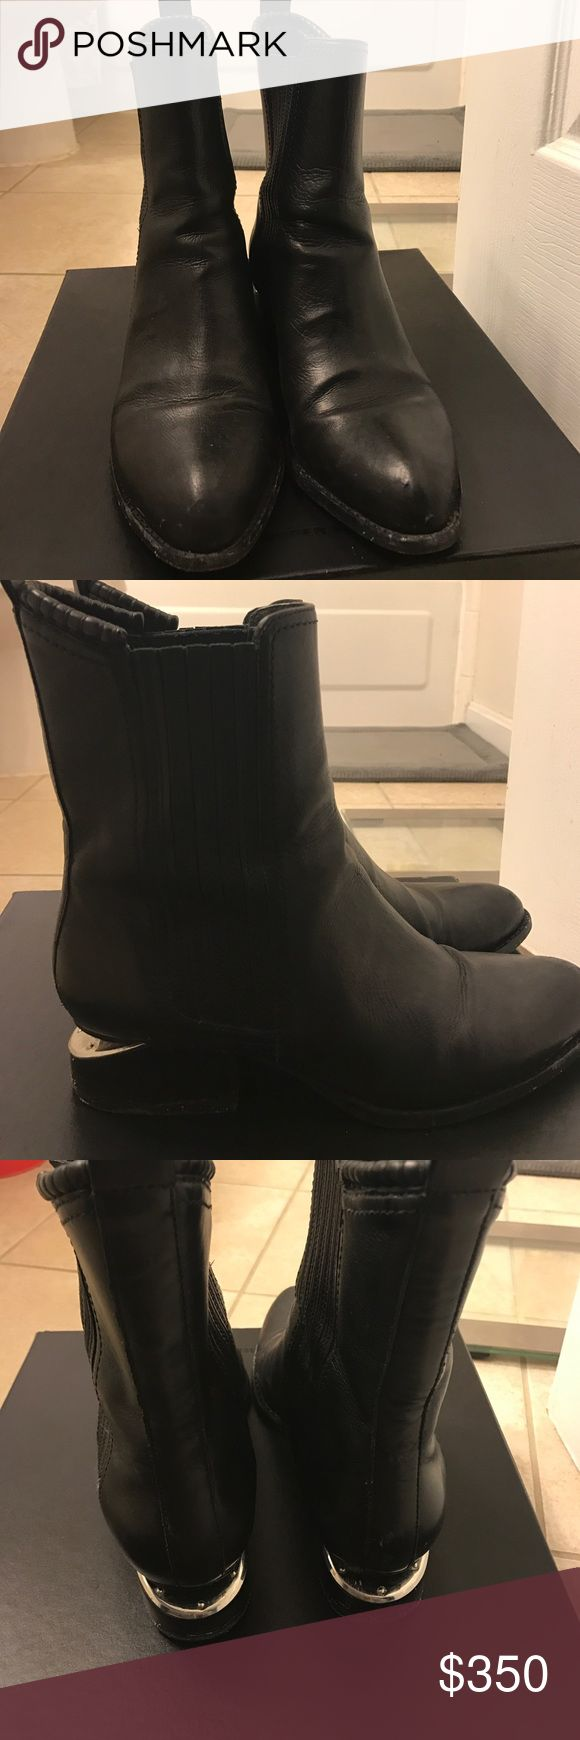 Alexander Wang Anouck Black leather Chelsea boots with silver metal heel. Worn several times. Purchased at Barney's. Alexander Wang Shoes Ankle Boots & Booties